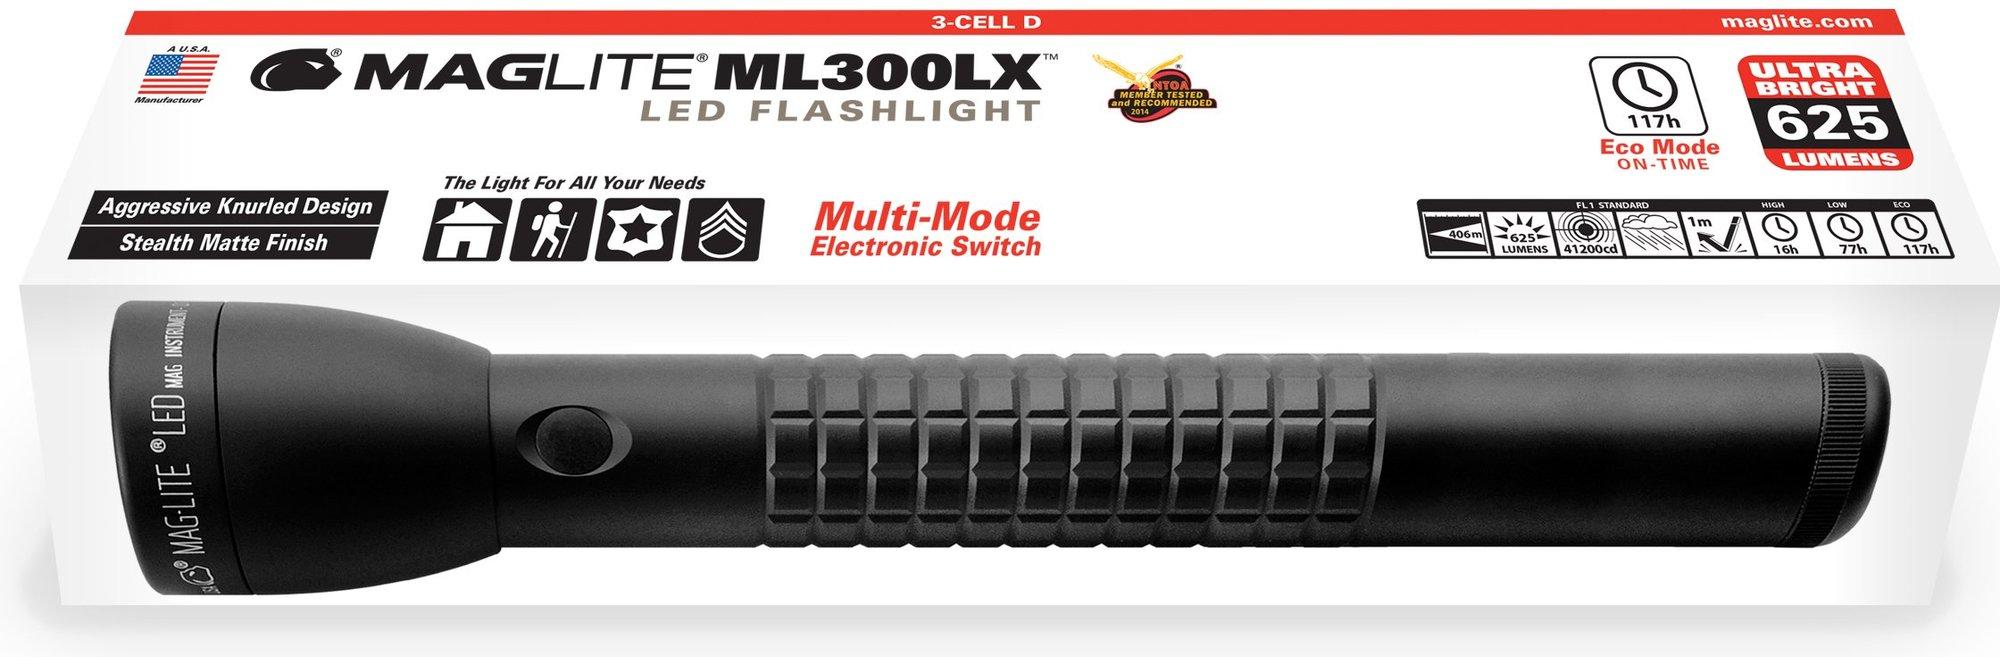 Maglite ML300LX 3D lommelygte